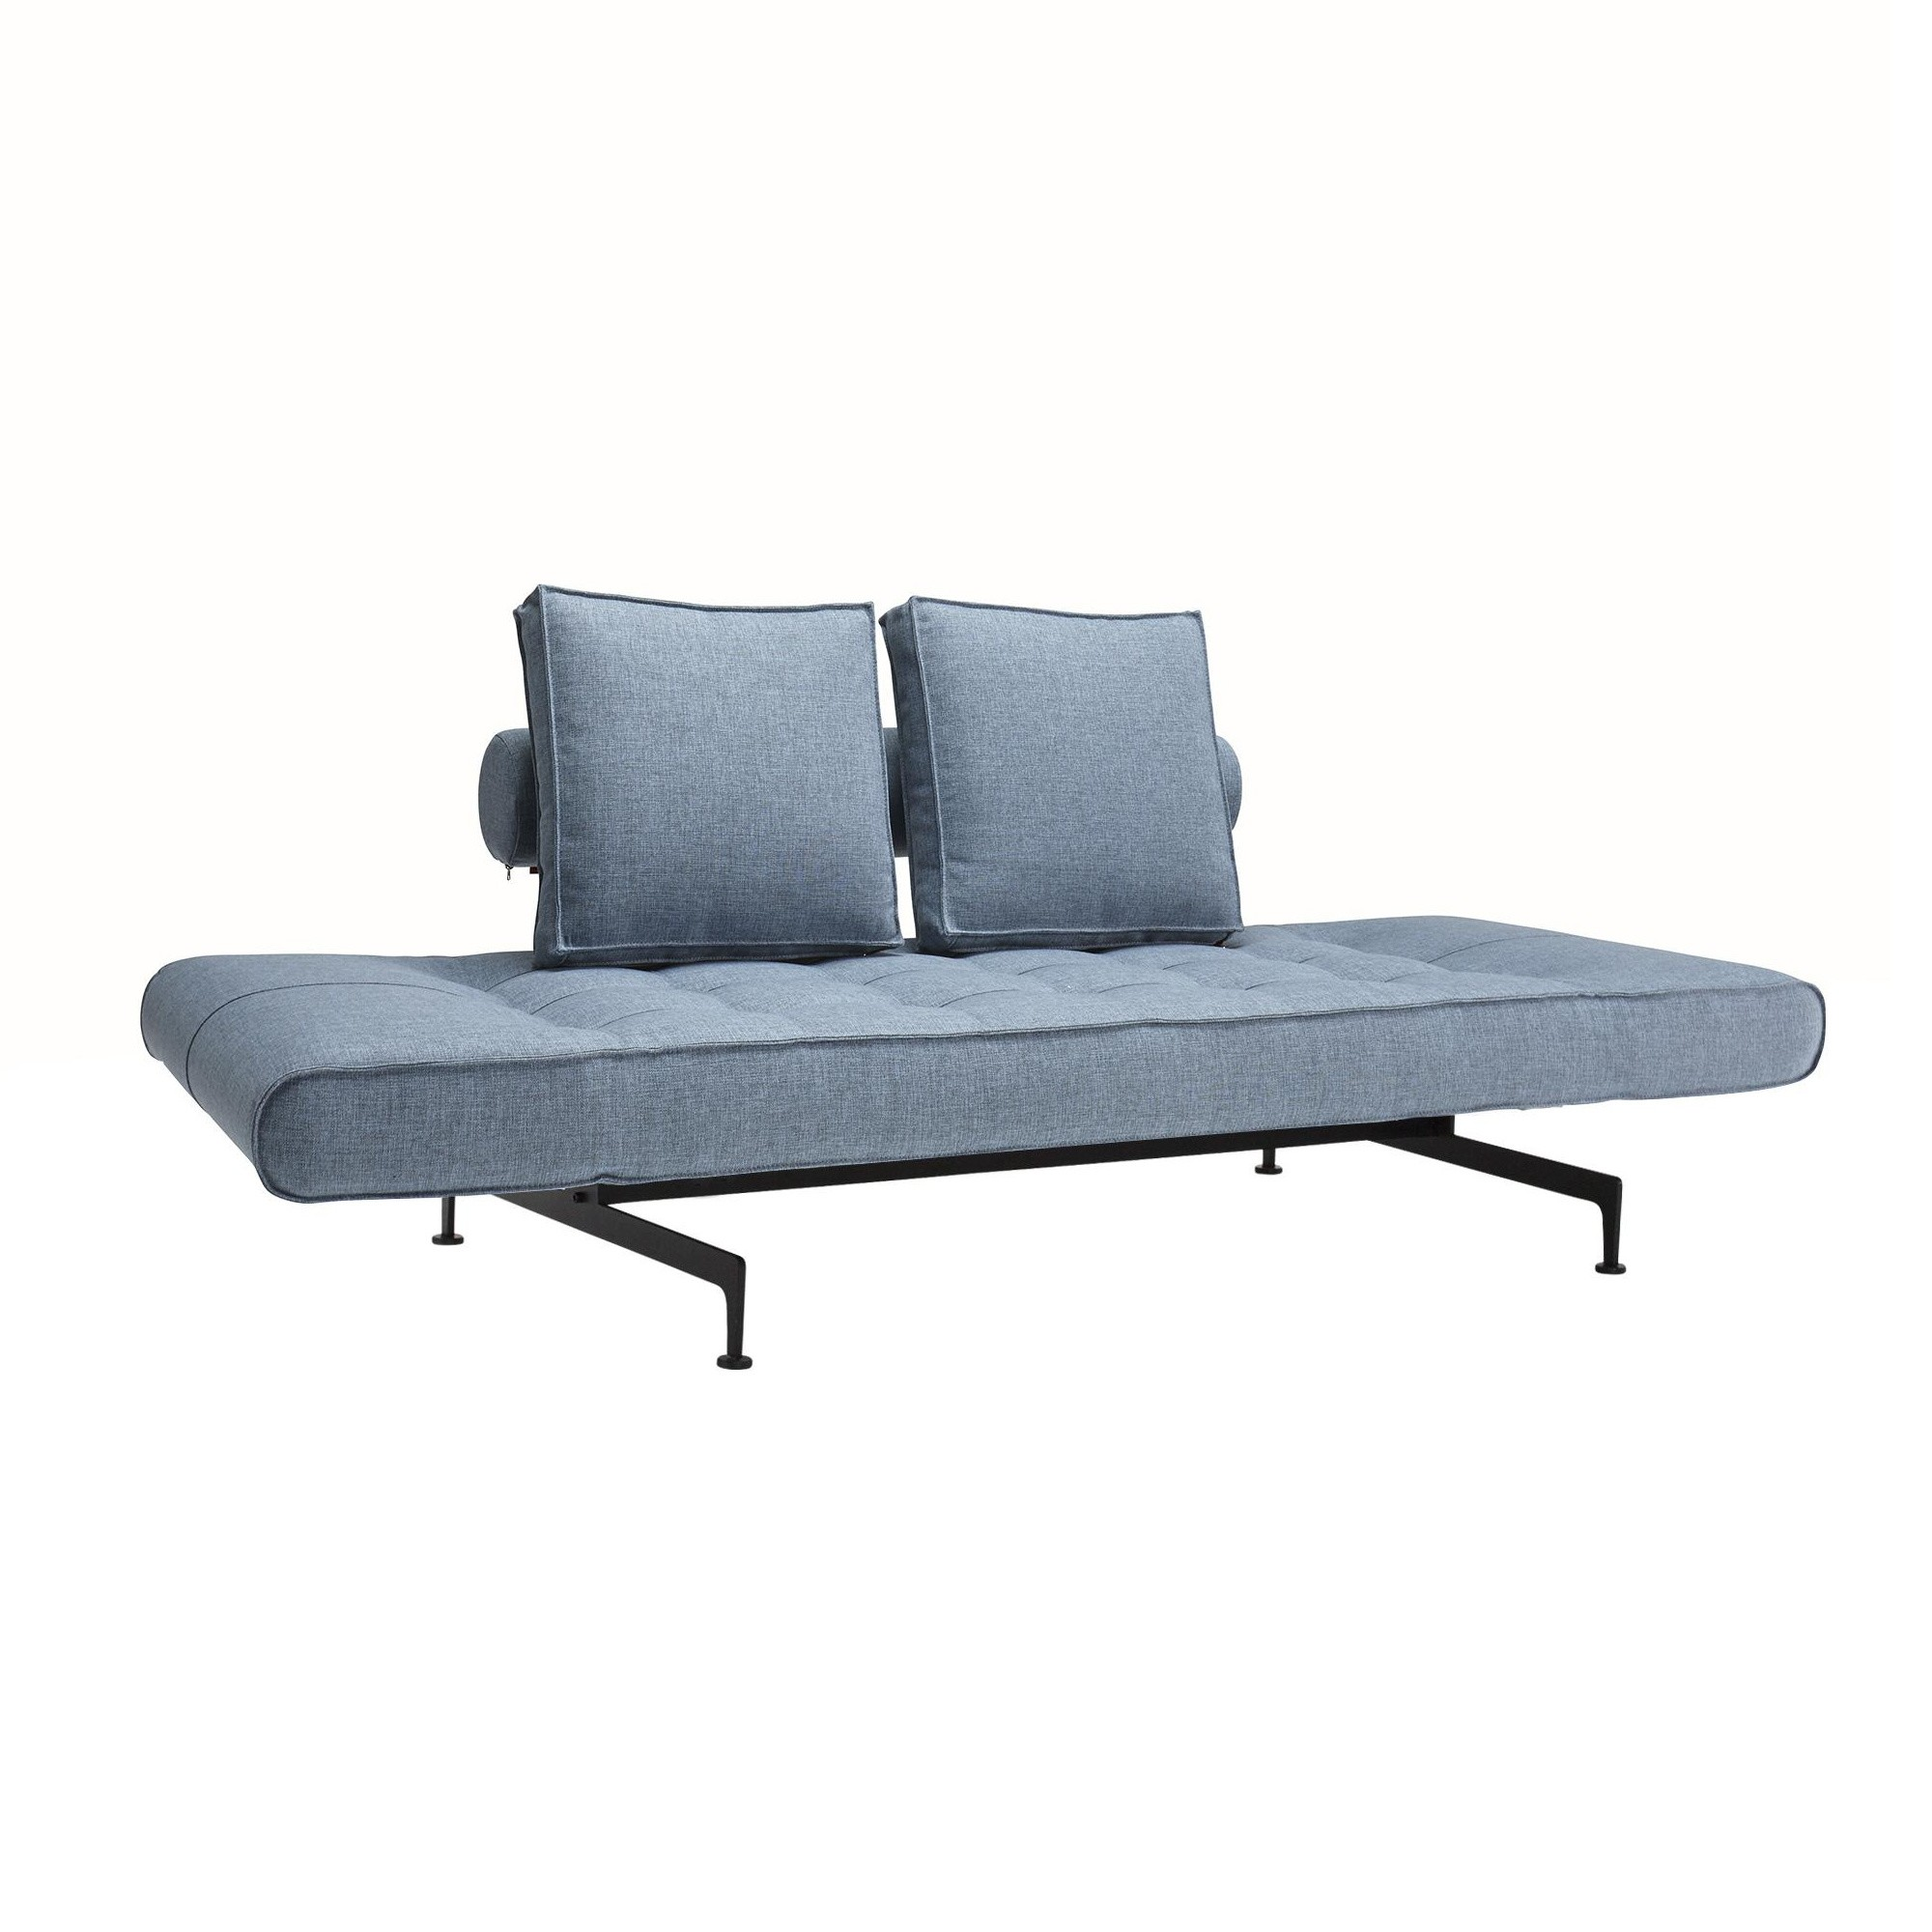 Awesome Ghia Laser Sofa Bed 180X93Cm Ocoug Best Dining Table And Chair Ideas Images Ocougorg